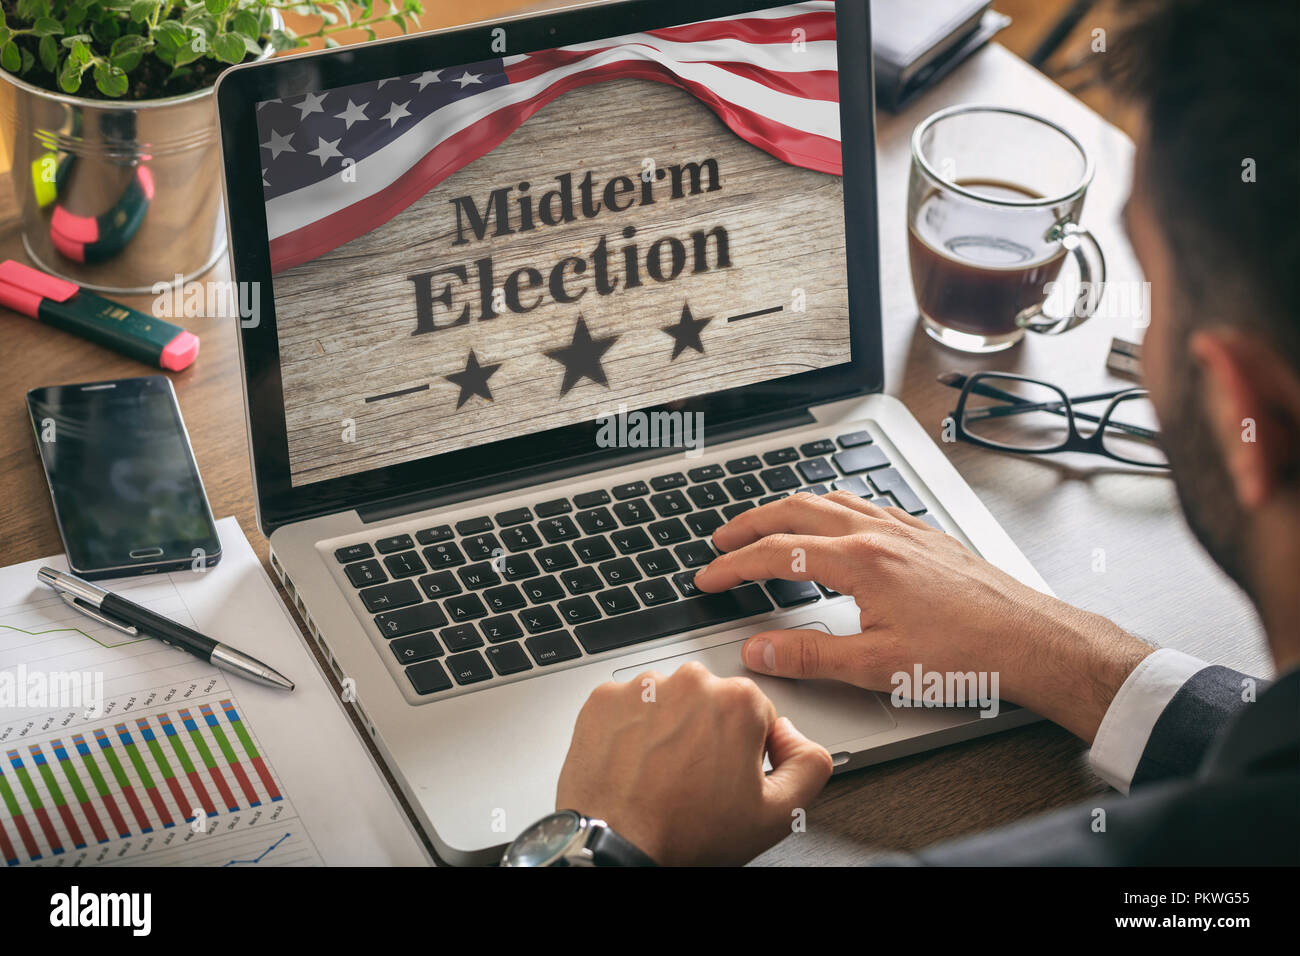 USA electronic vote concept. Businessman with a US of America midterm elections picture onscreen - Stock Image